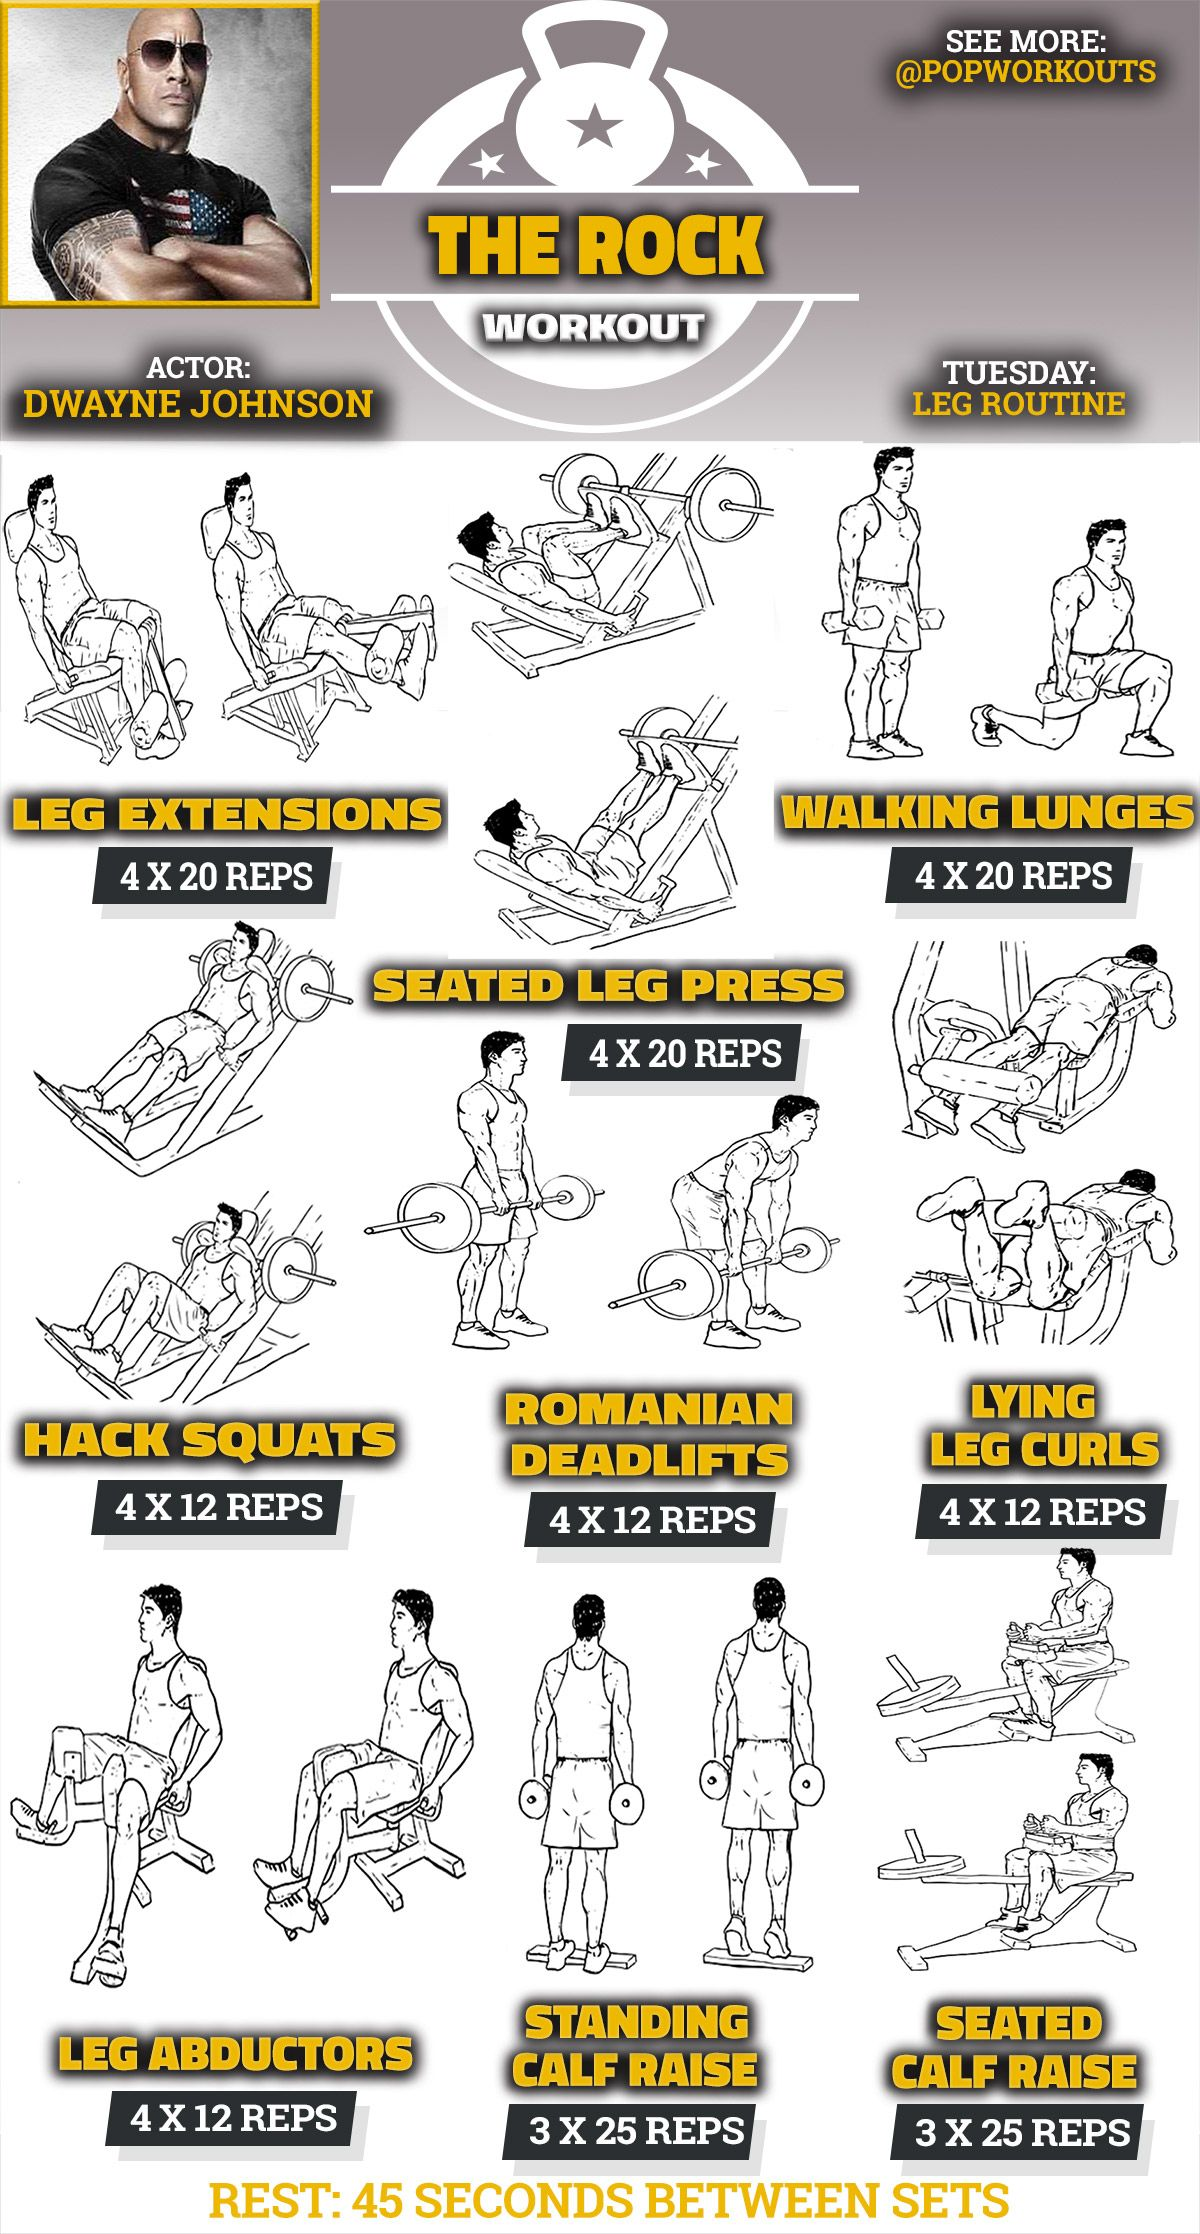 Gym Workout Chart For Chest For Men The Rock Legs Workout Routine Fitness Pinterest